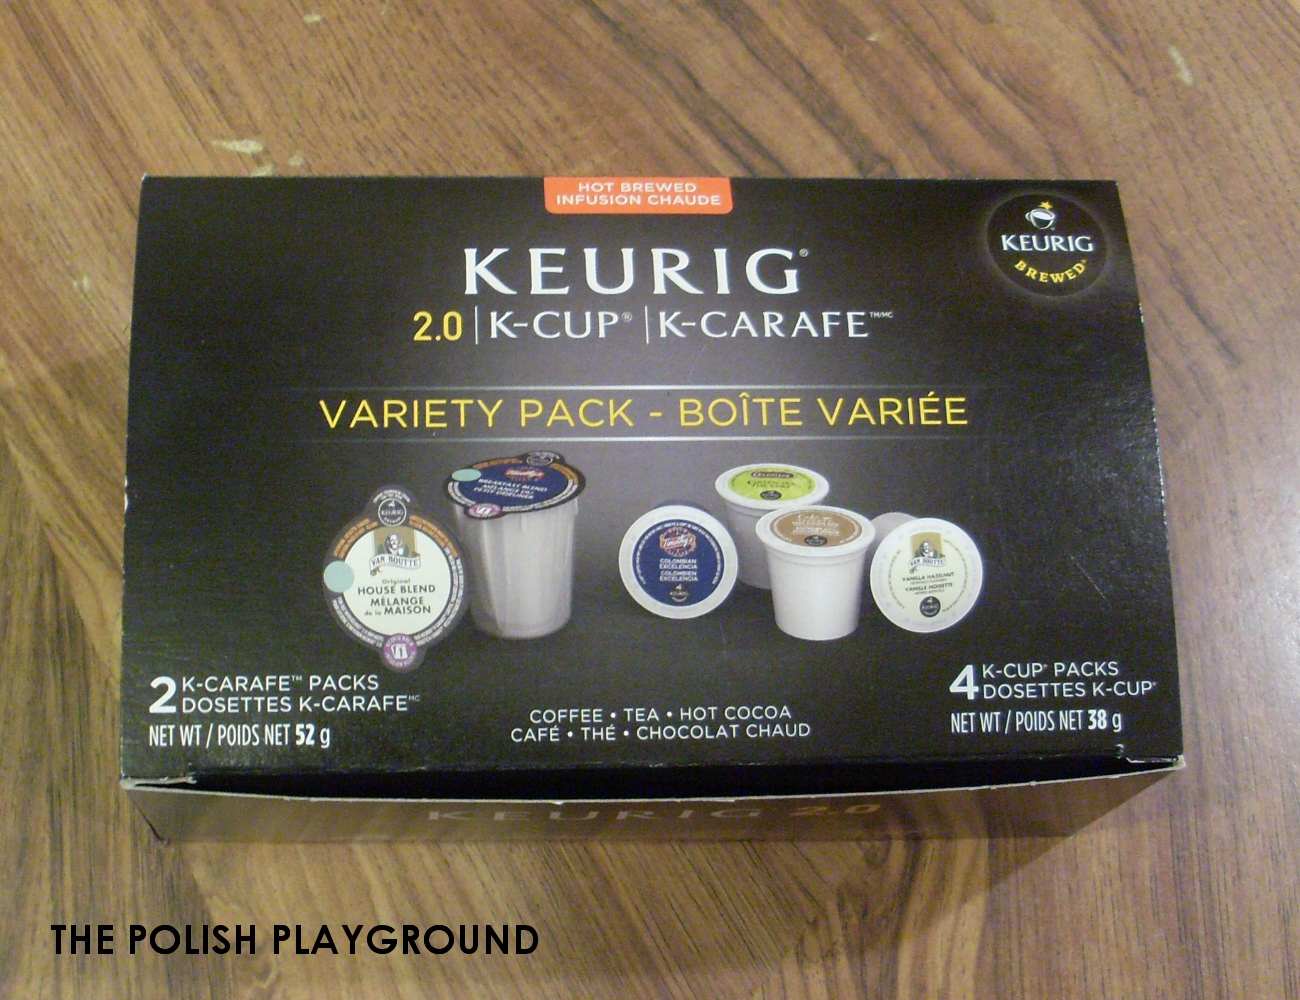 Influenster - Keurig 2.0 K-Cup Packs and K-Carafe Packs